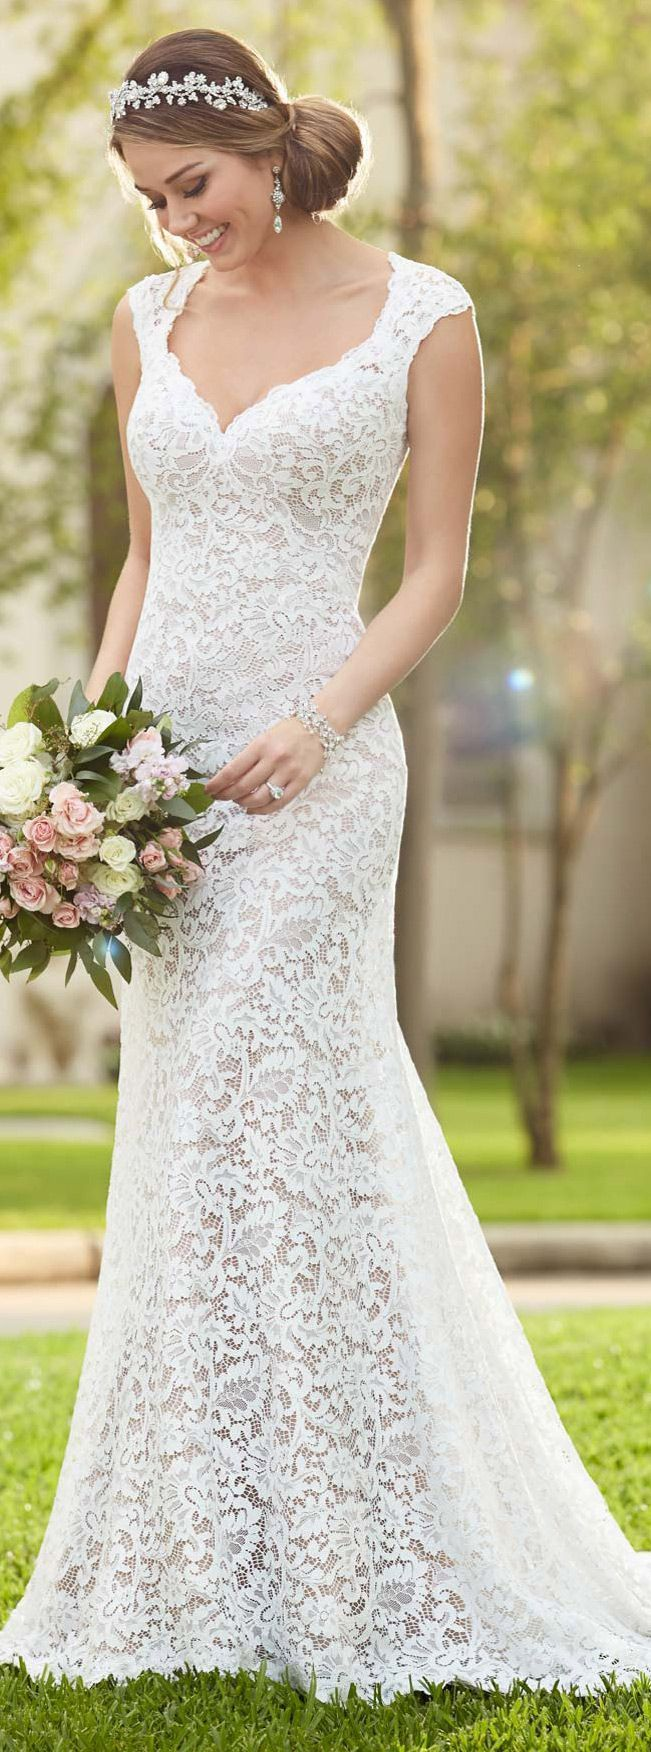 25 best ideas about simple lace wedding dress on for Best lace wedding dresses